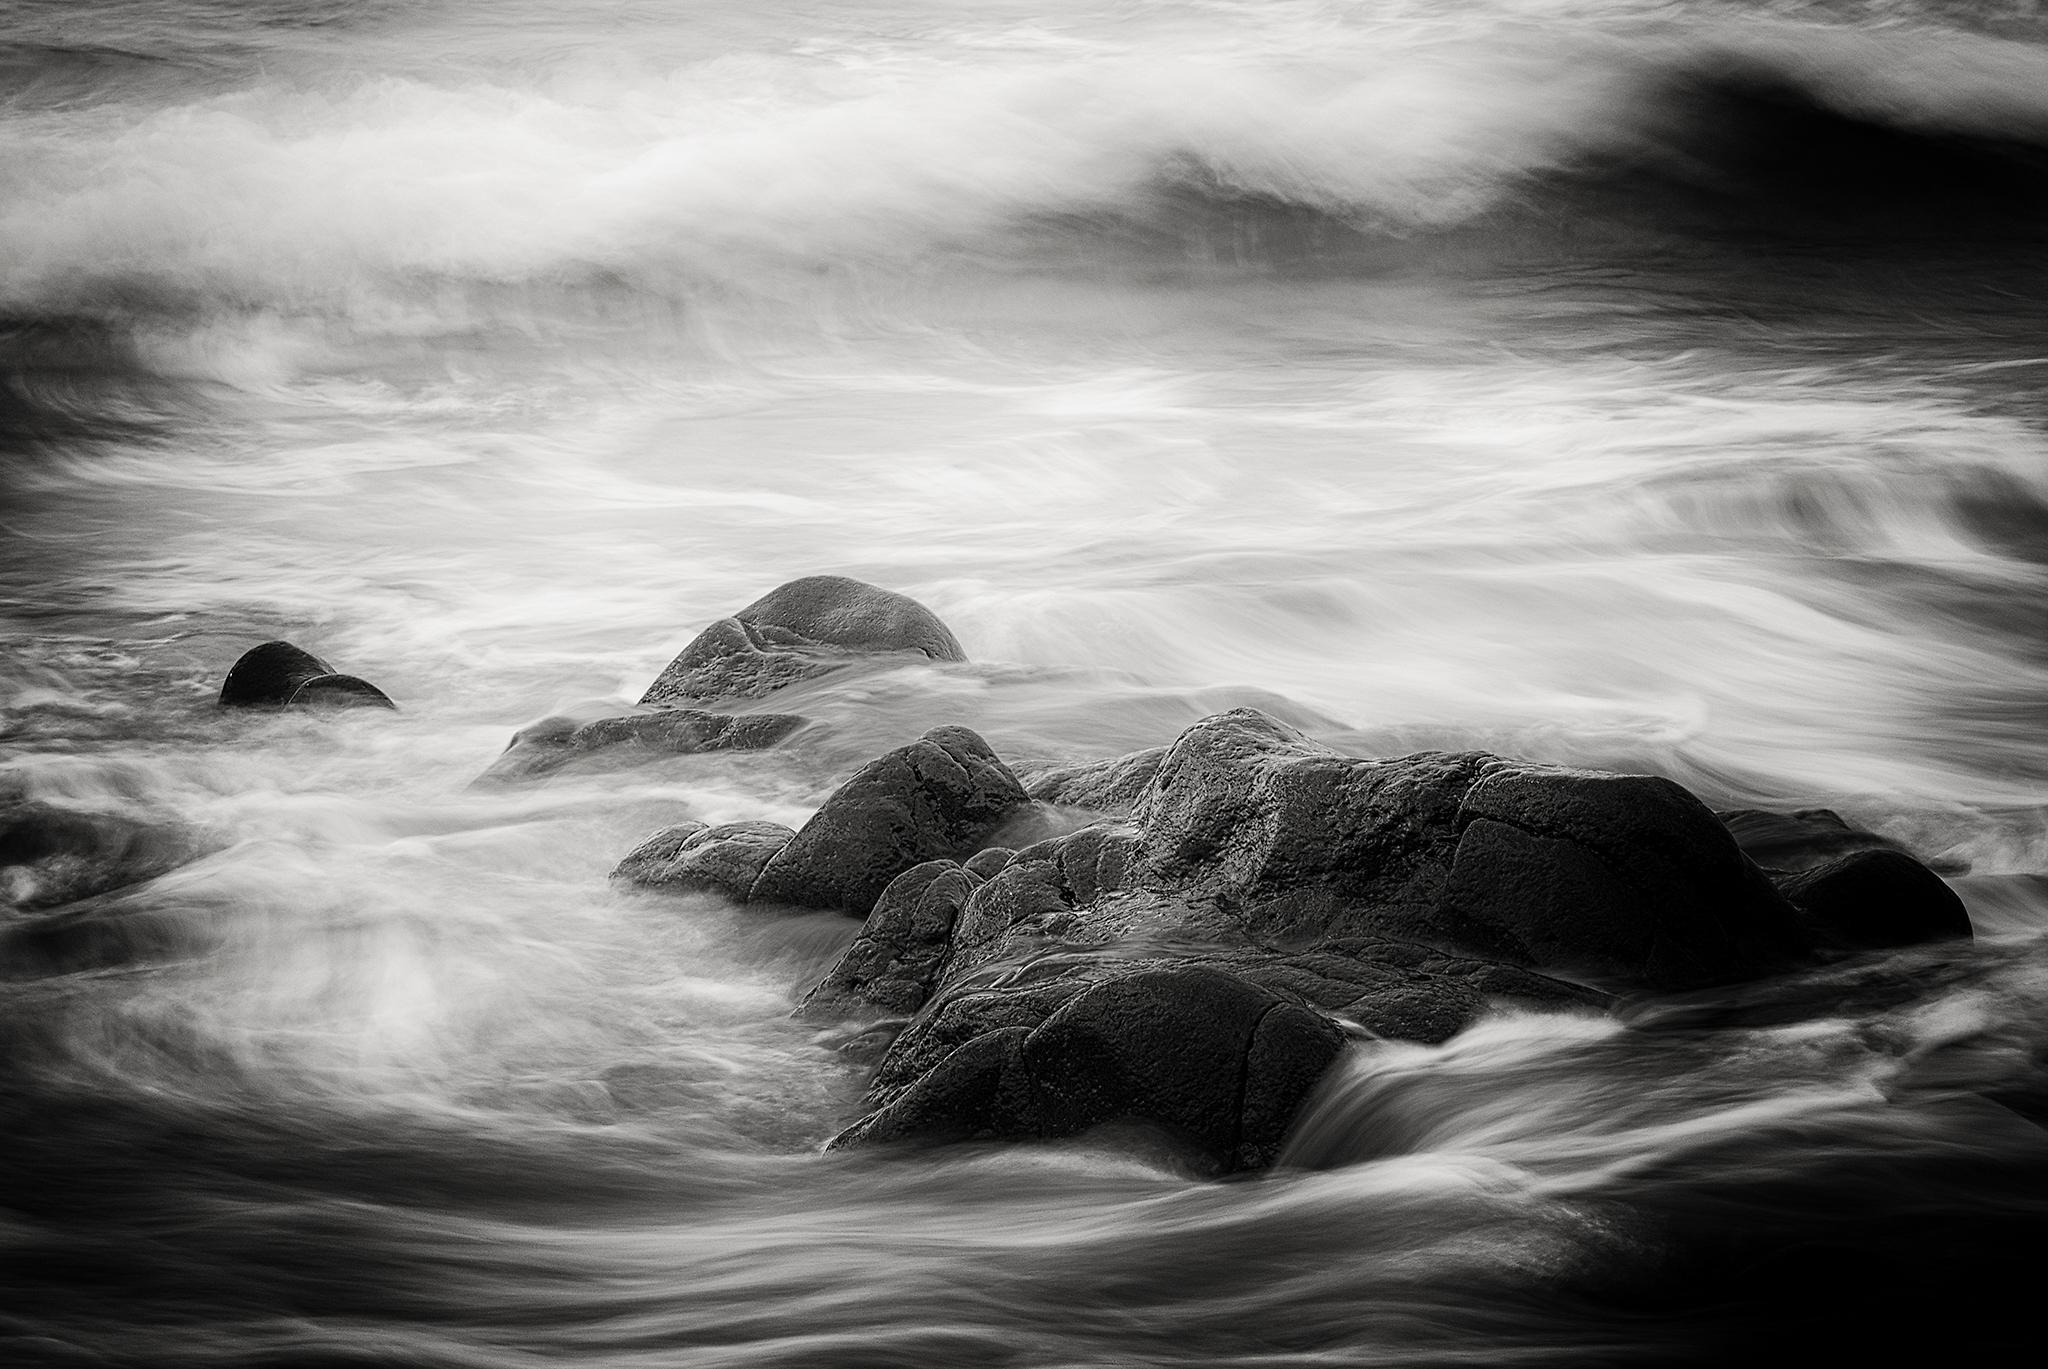 Collection 2 - Turbulent Sea 2